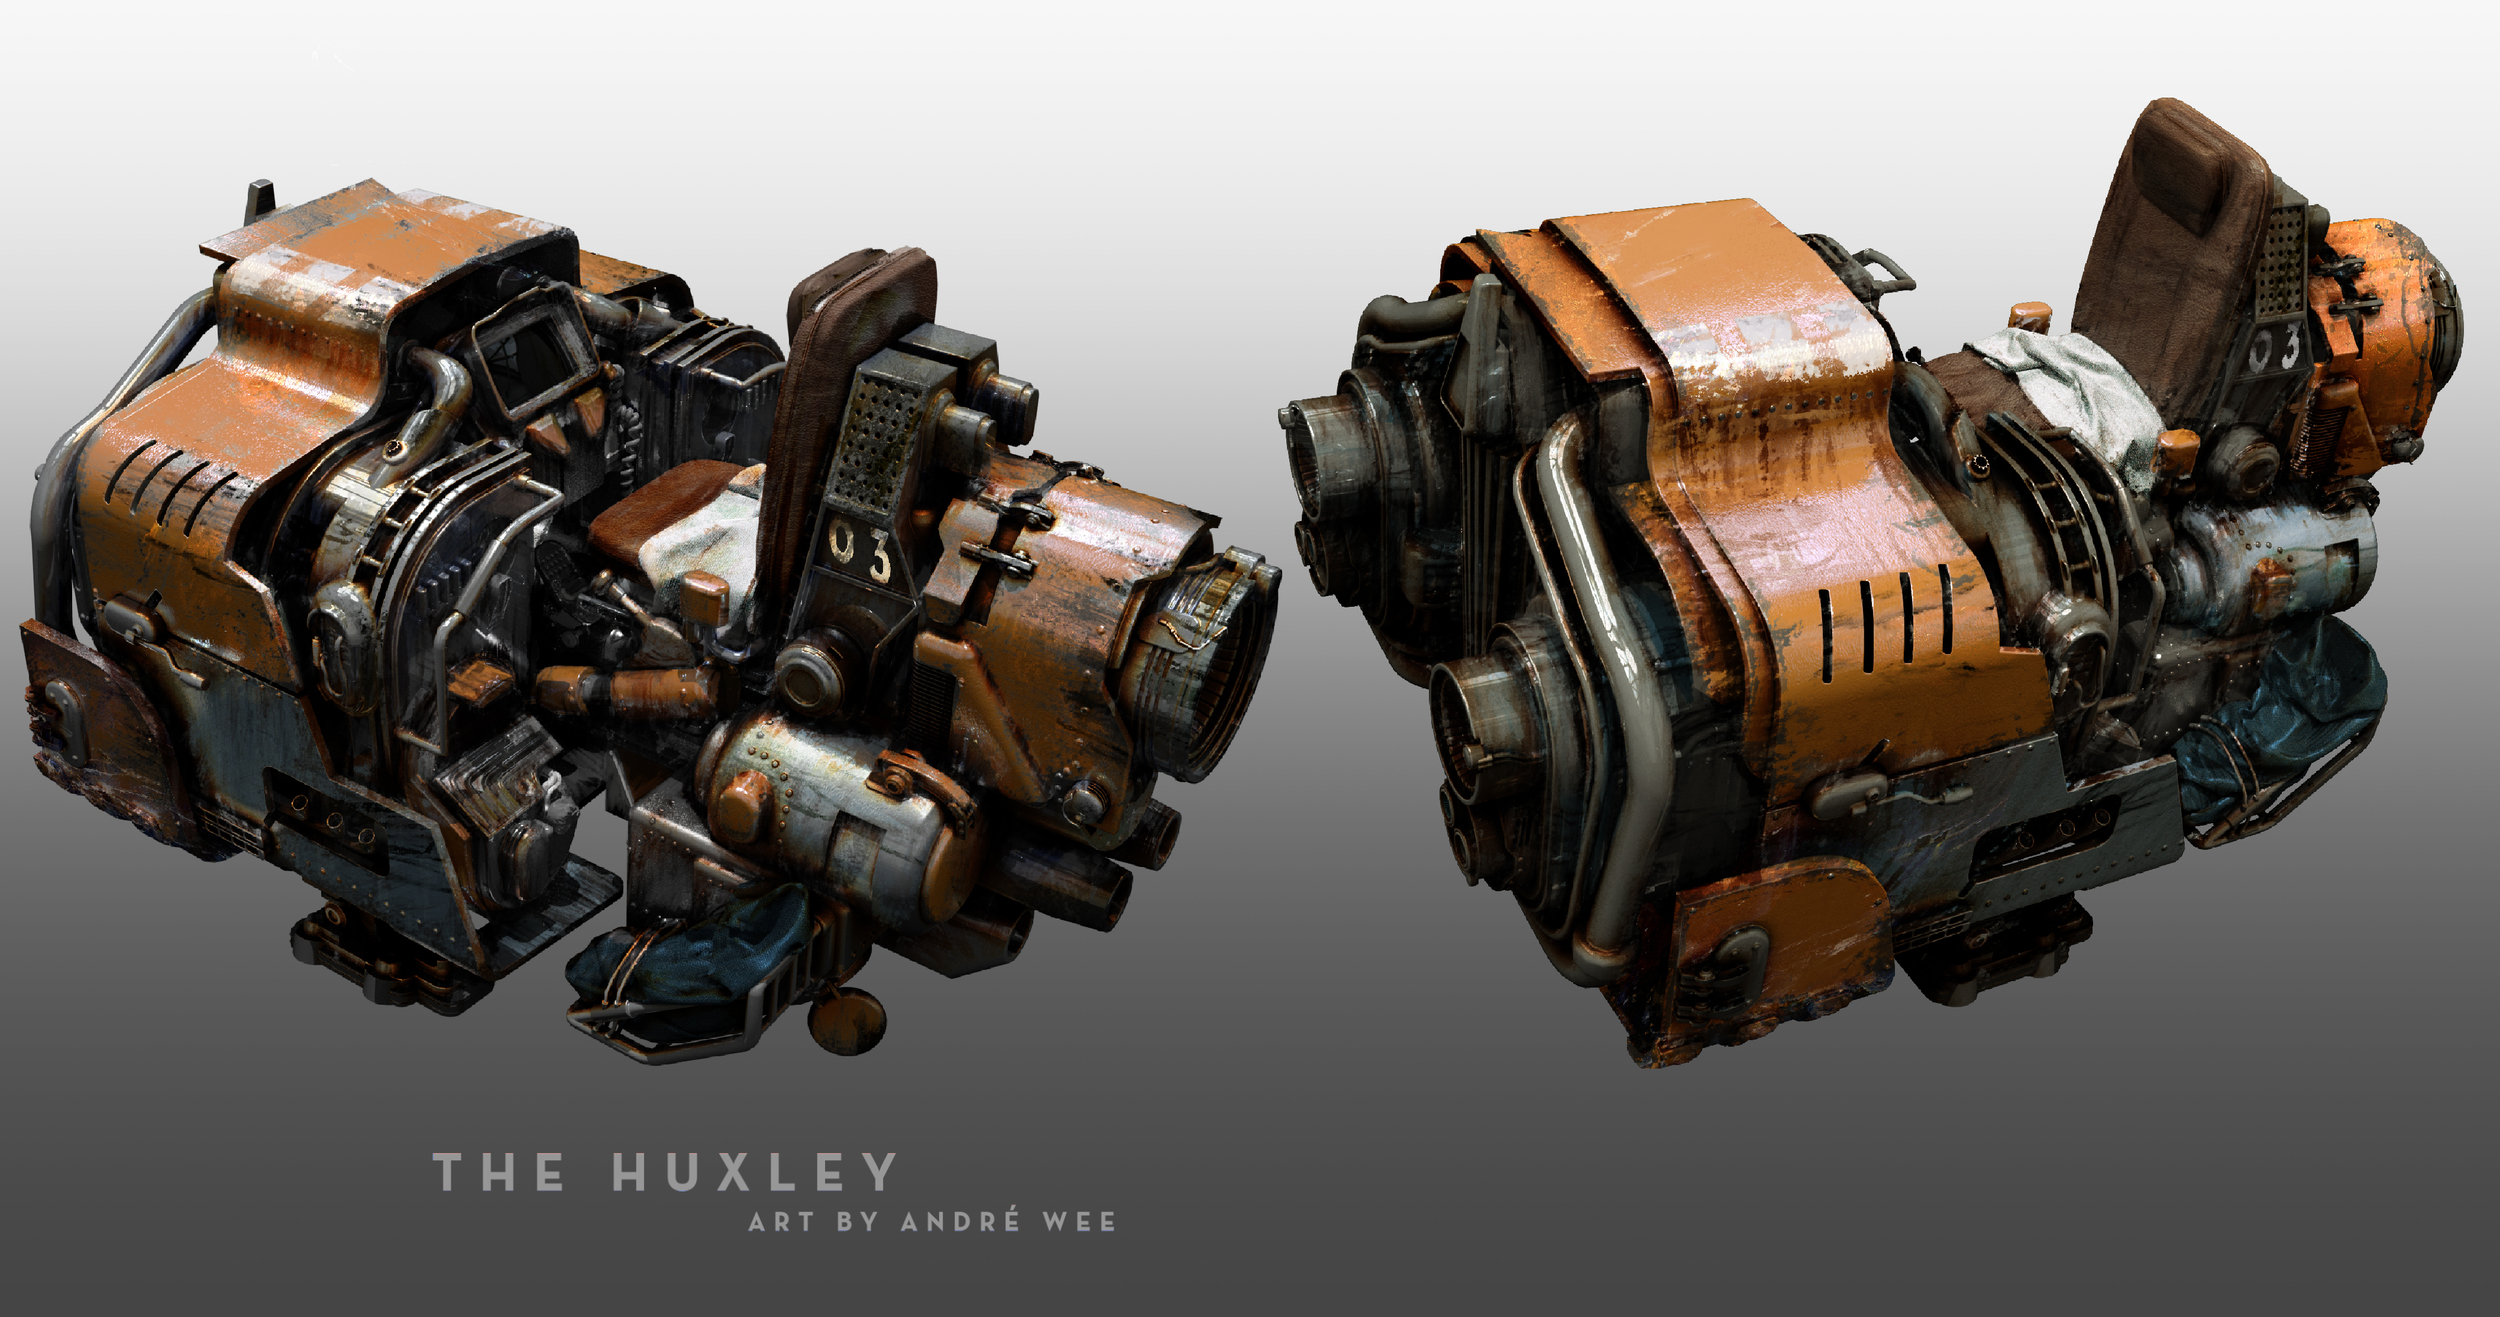 TheHuxley_01_andrewee.jpg